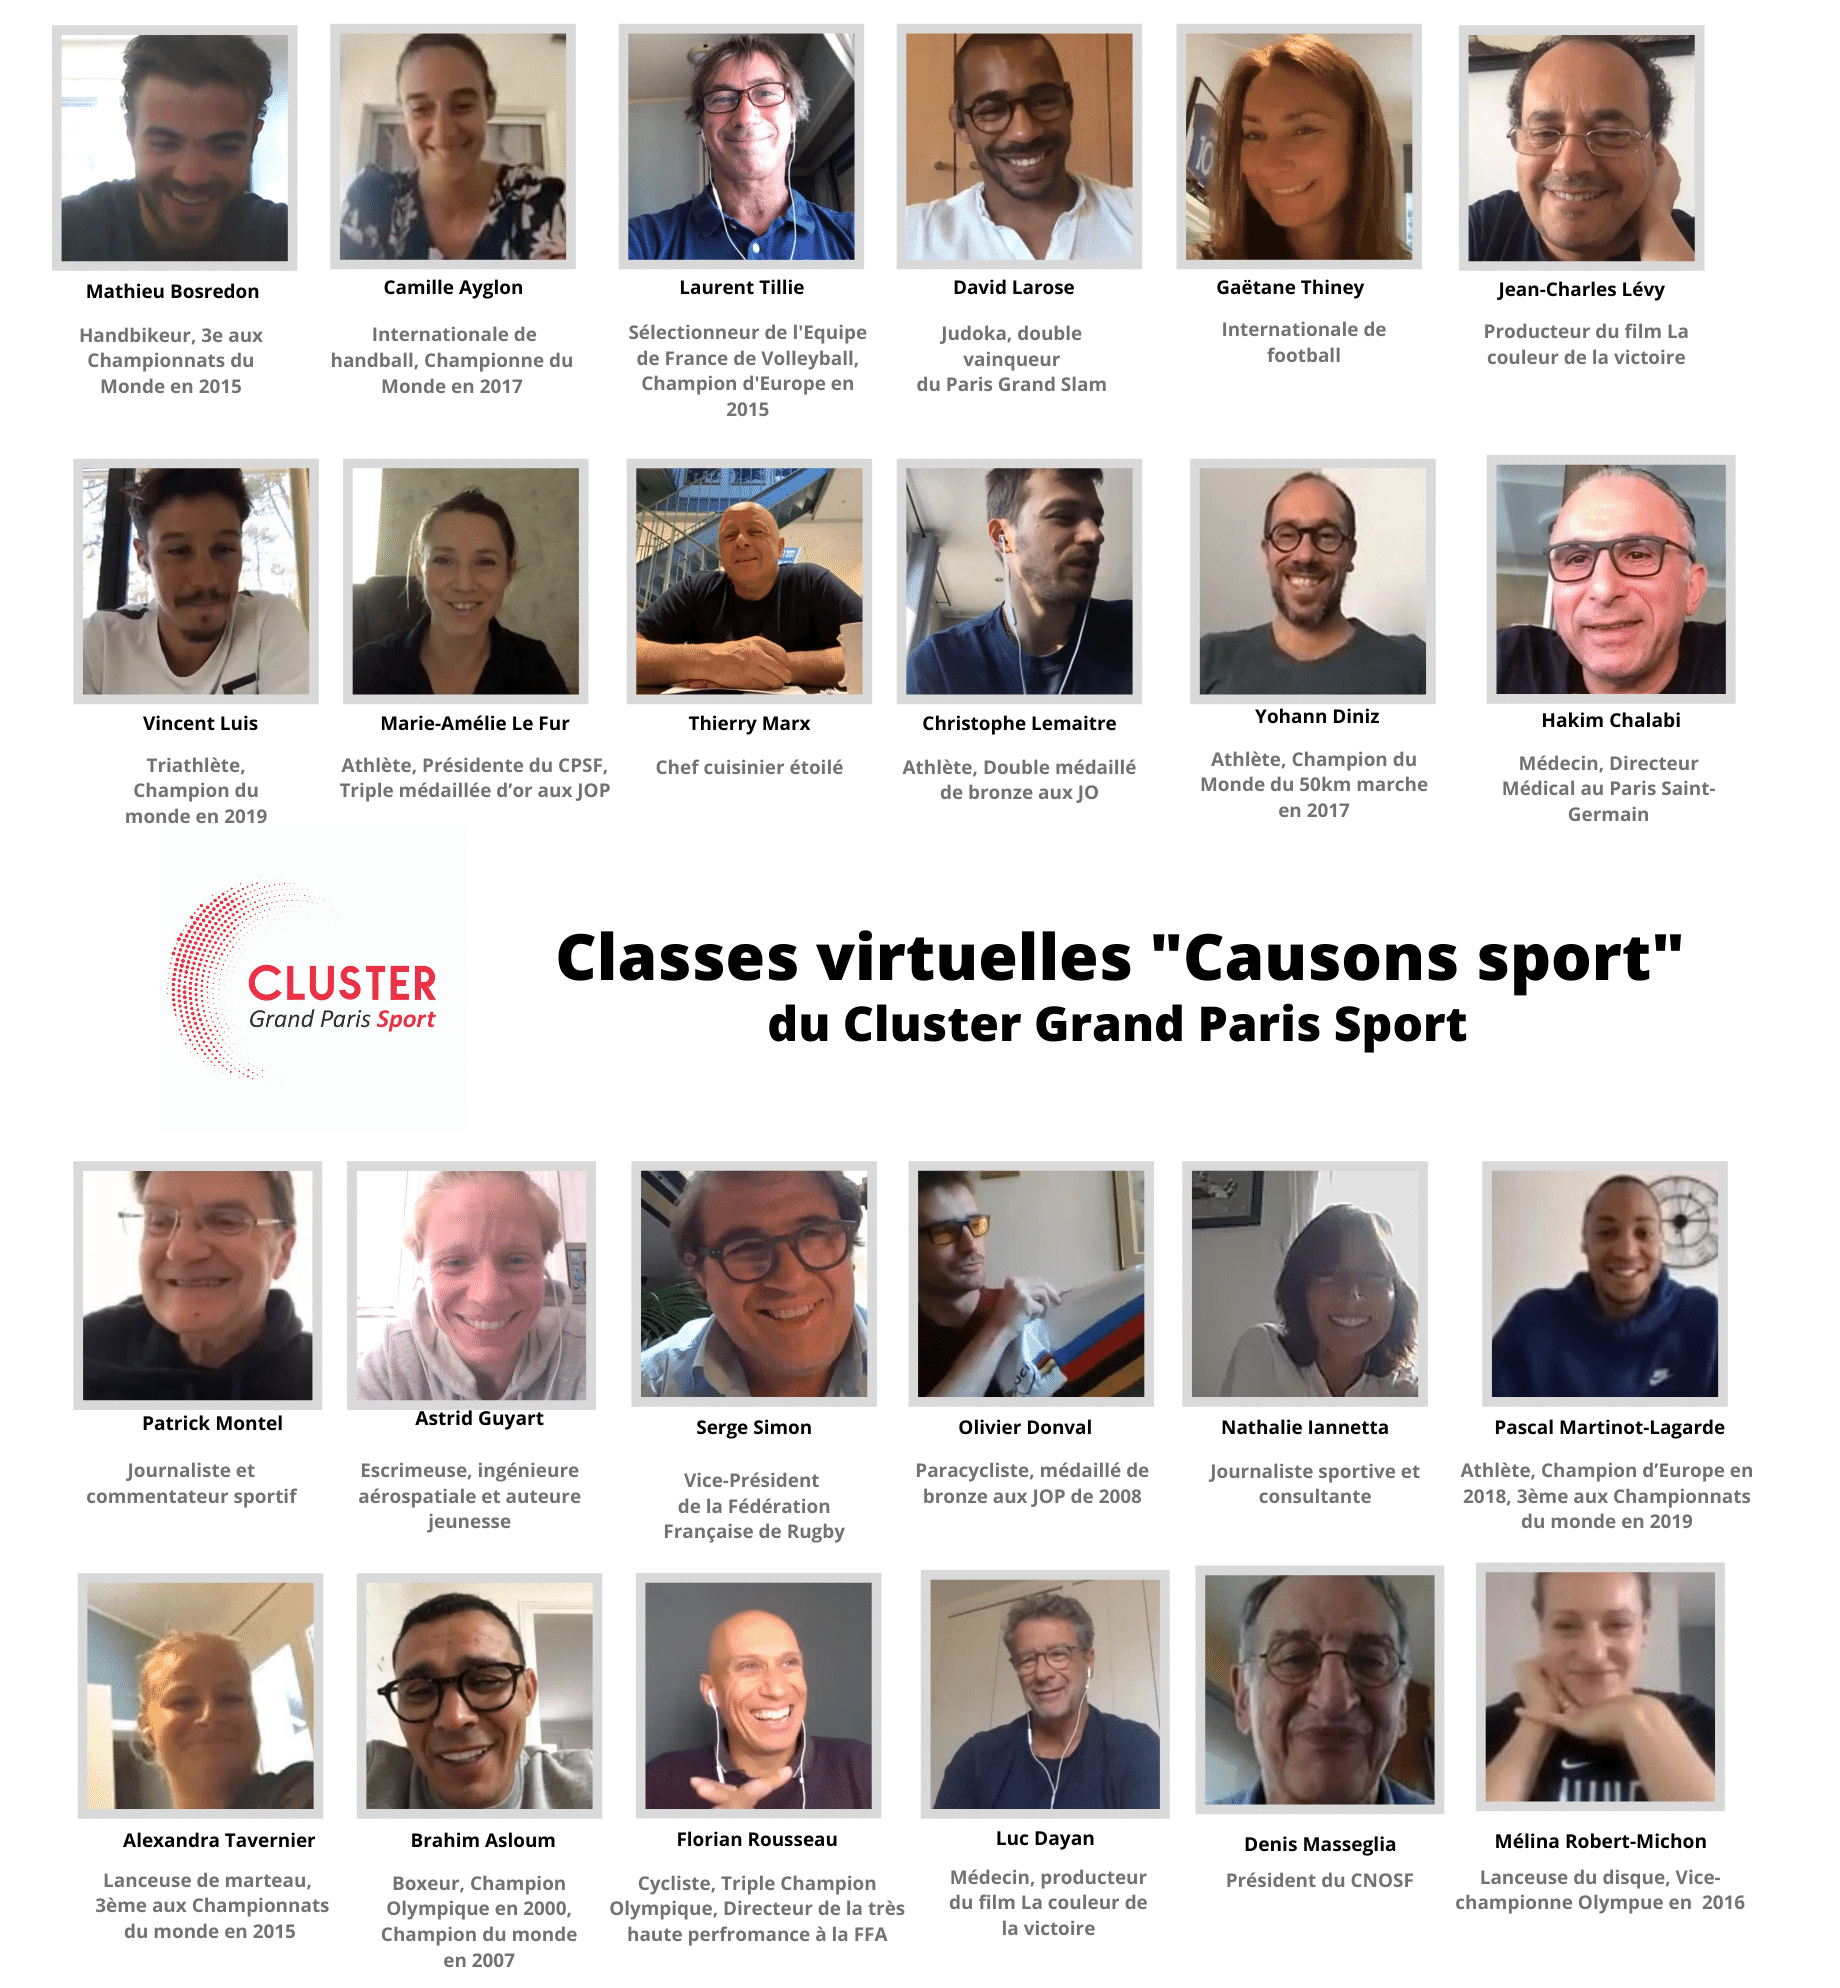 Classes virtuelles Cluster Grand Paris Sport 9